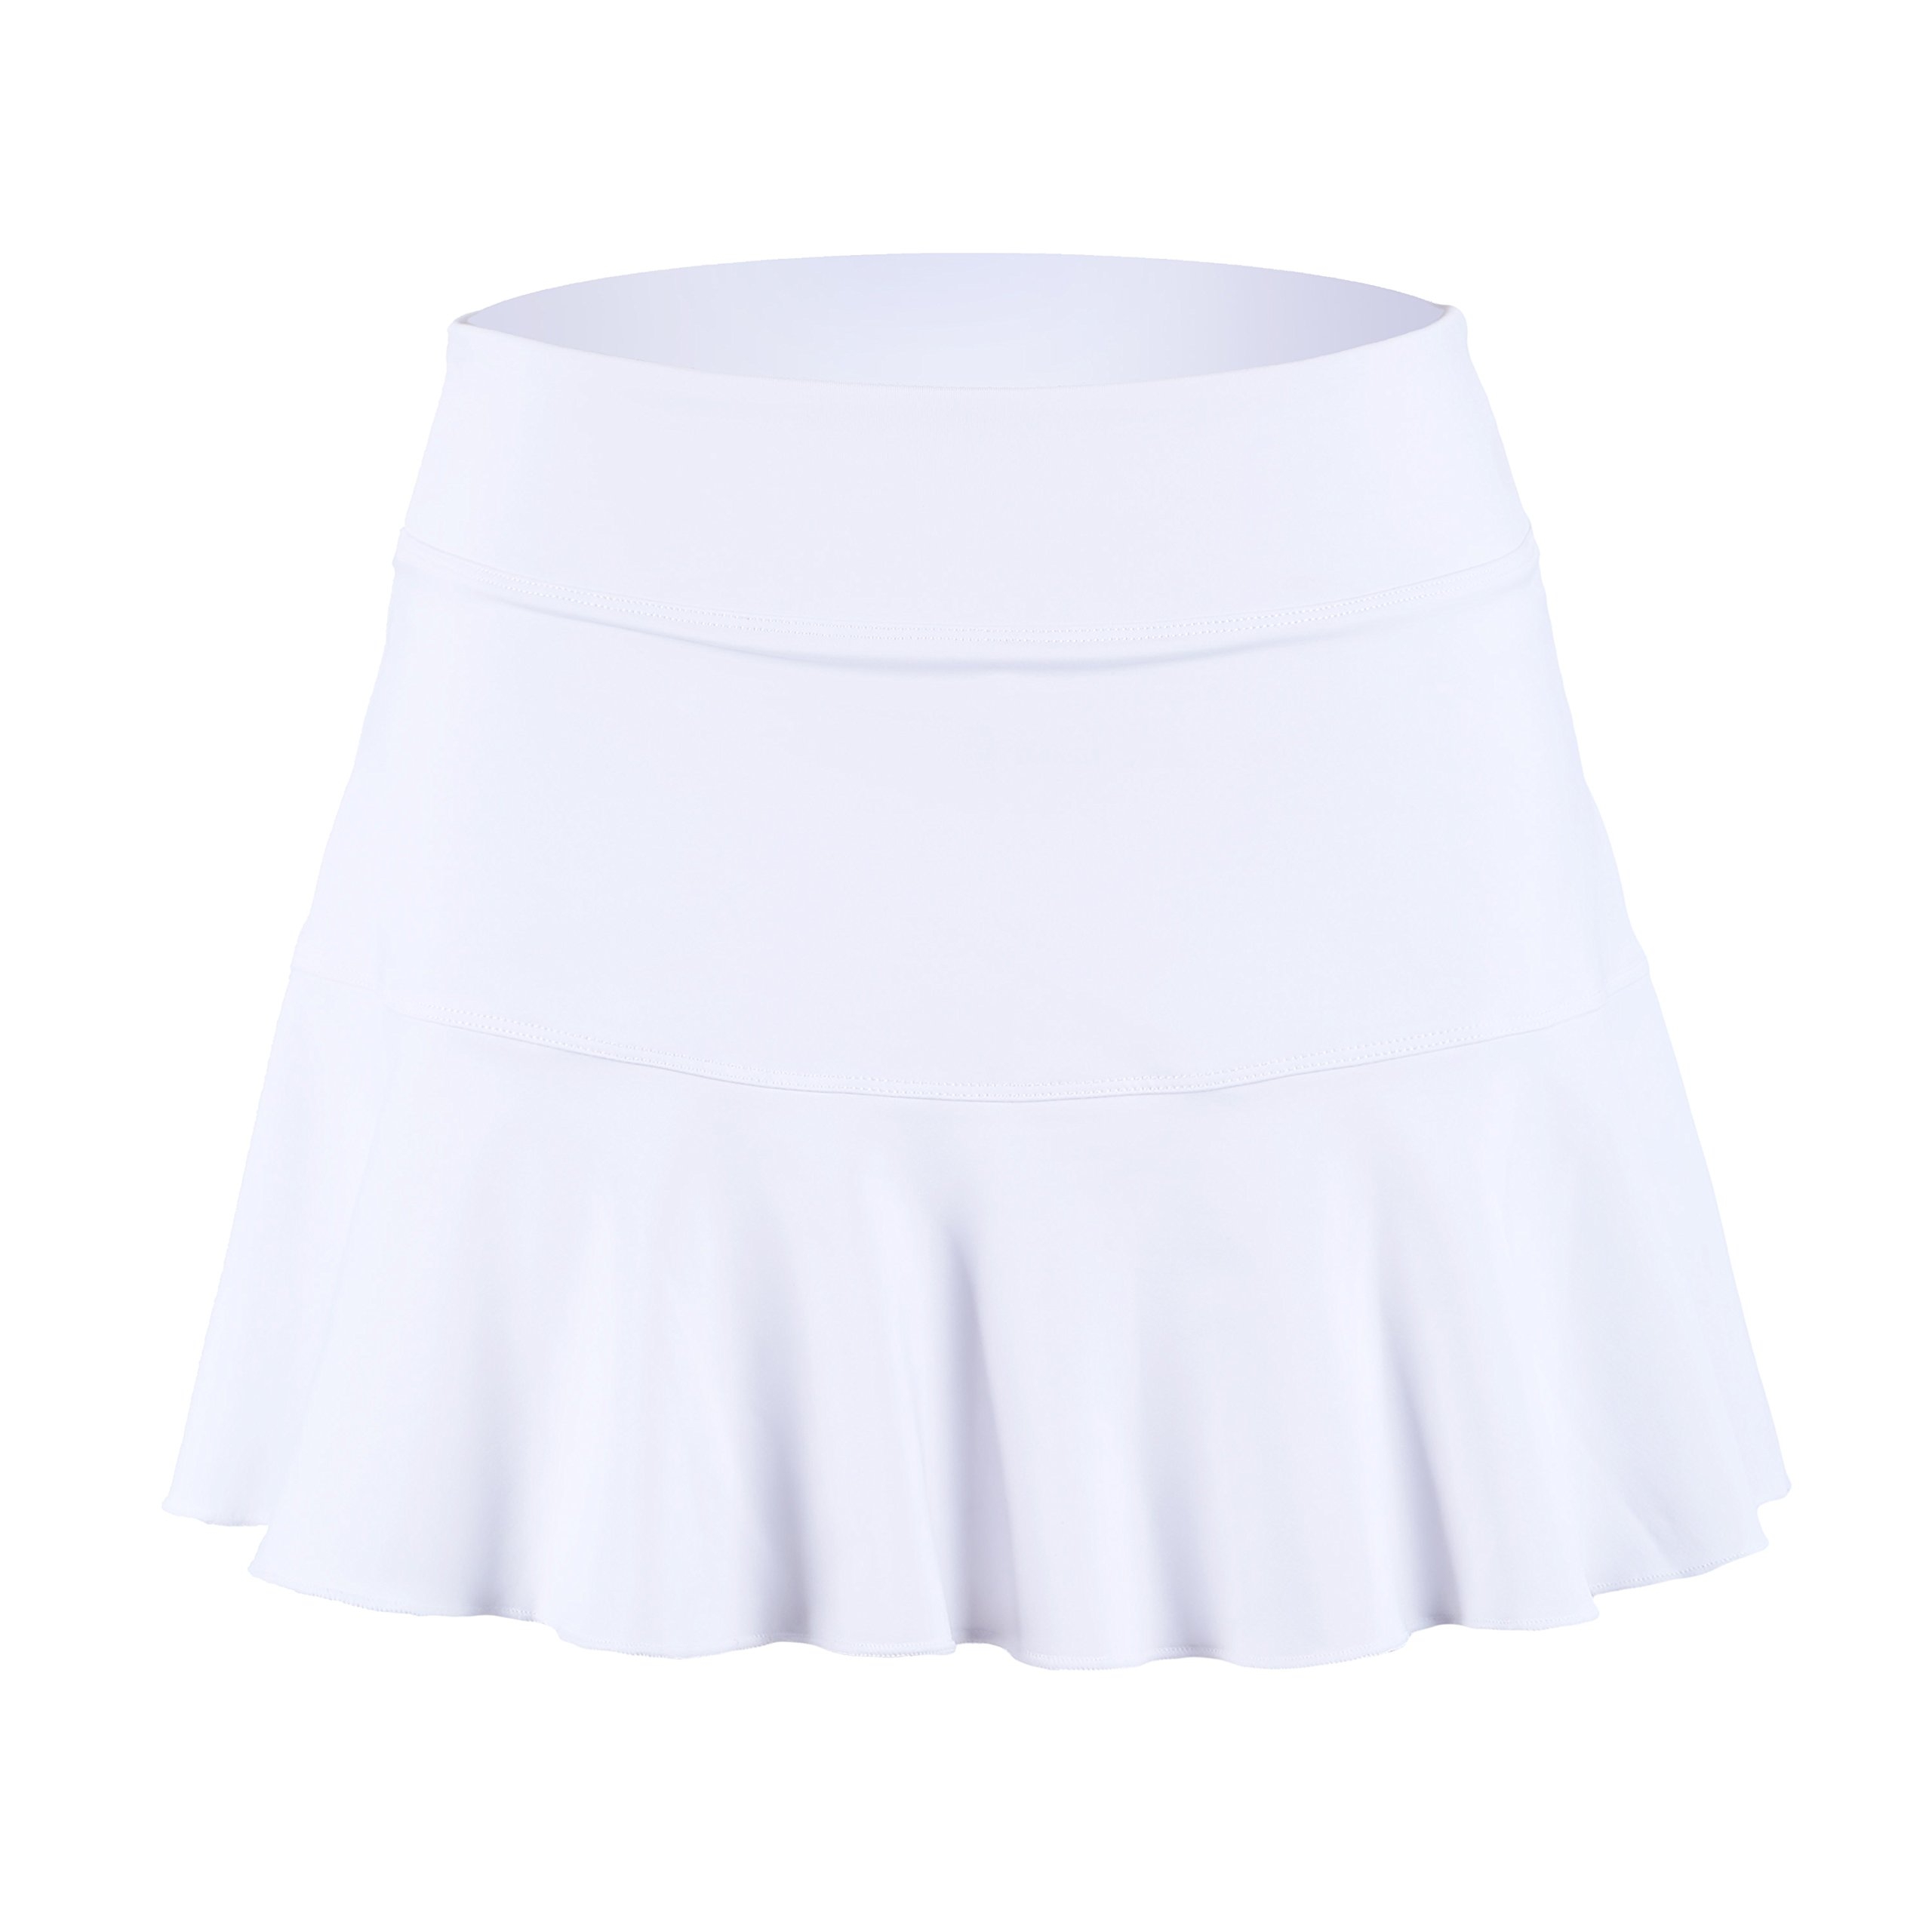 1 by 1 Tennis Skirt, Women's Pleated Elastic Quick-Drying Running Tennis Skort Sport Skirt with Shorts White by 1 by 1